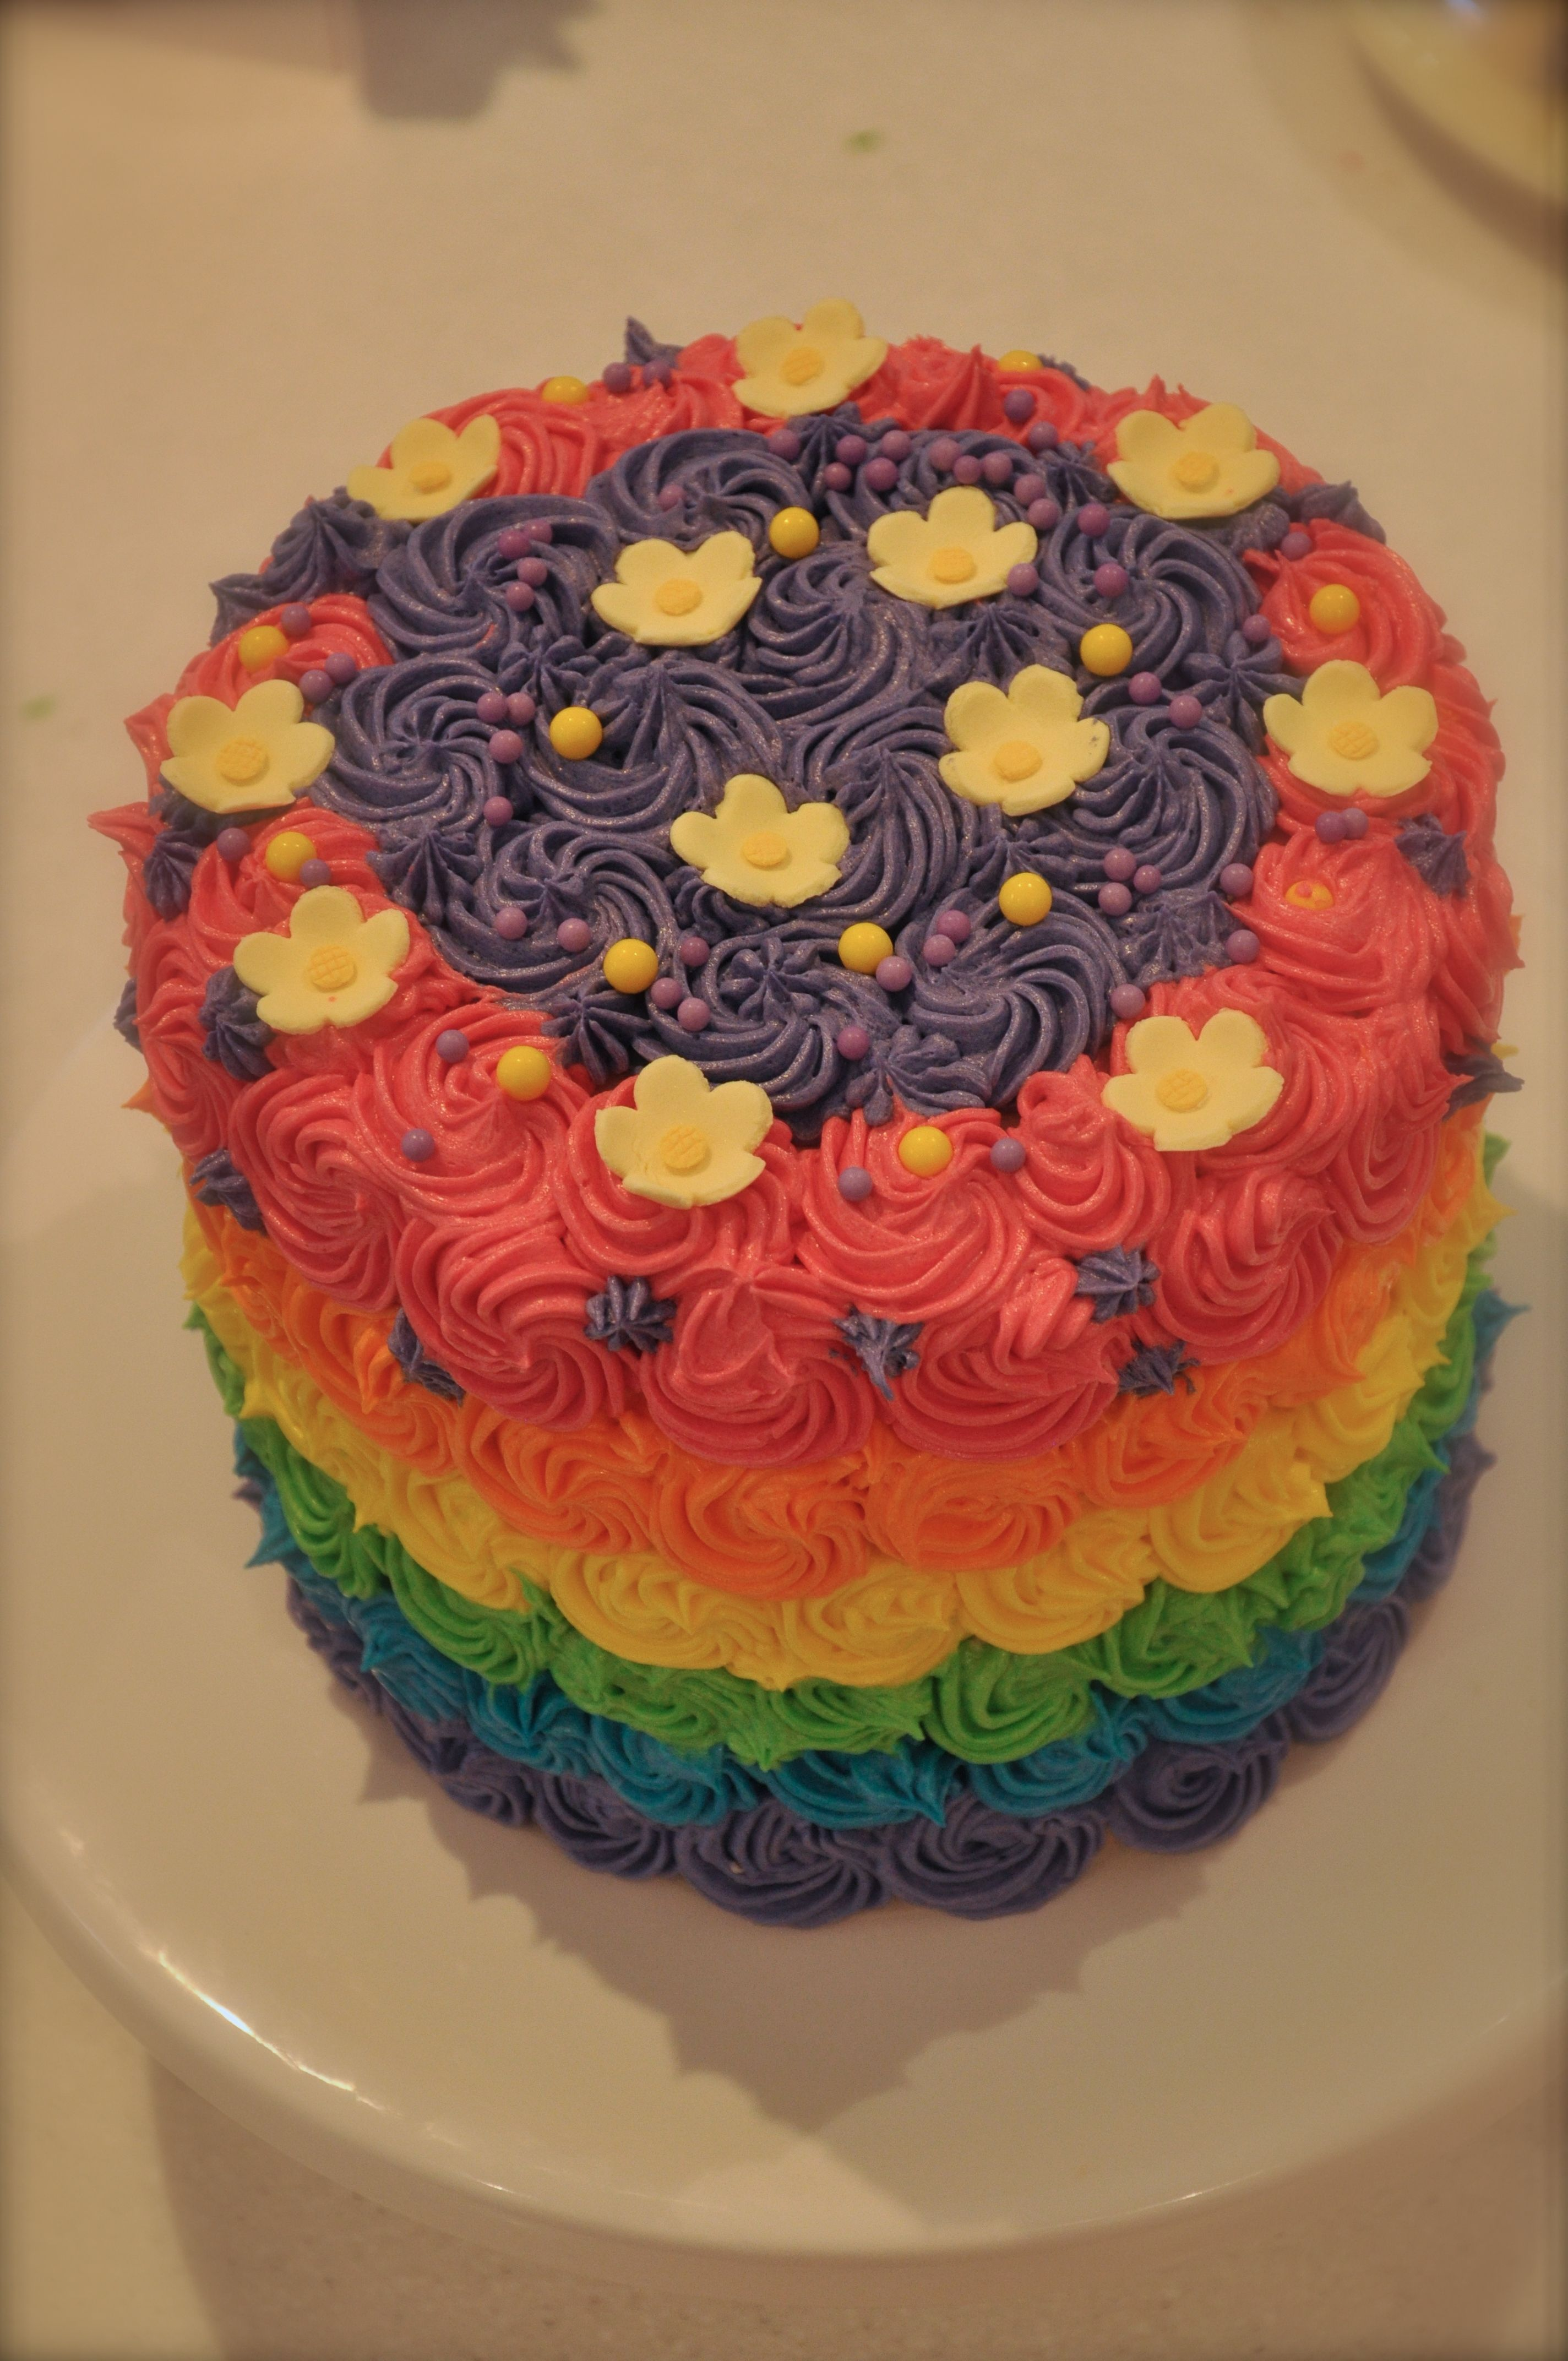 Emmas 8th Birthday Cakerainbow As Requested And She Decorated